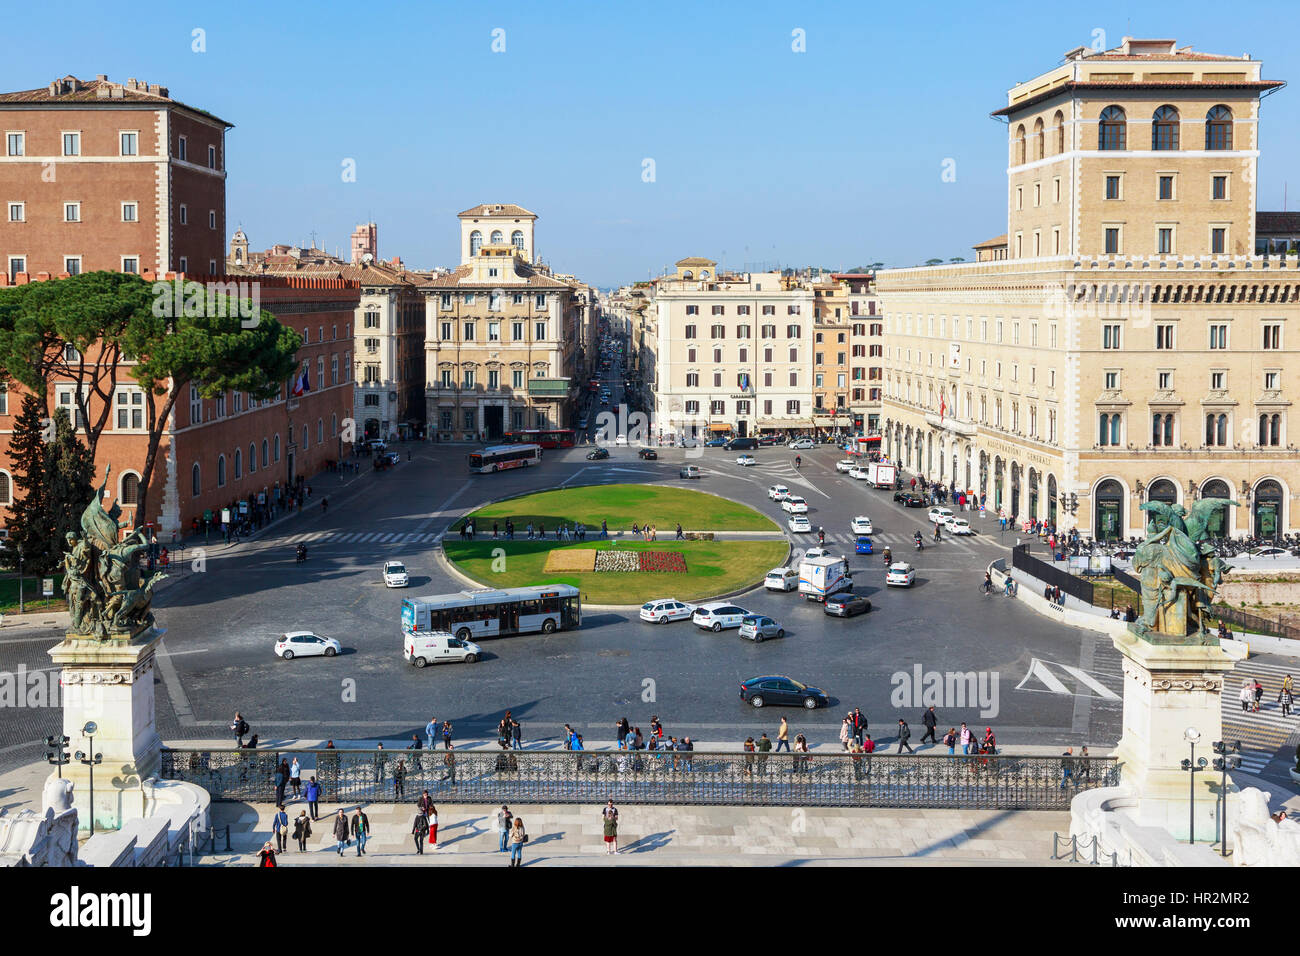 View of Piazza Venezia, towards Via del Corso, from the Monument to Vittorio Emanuele, Rome, Italy Stock Photo